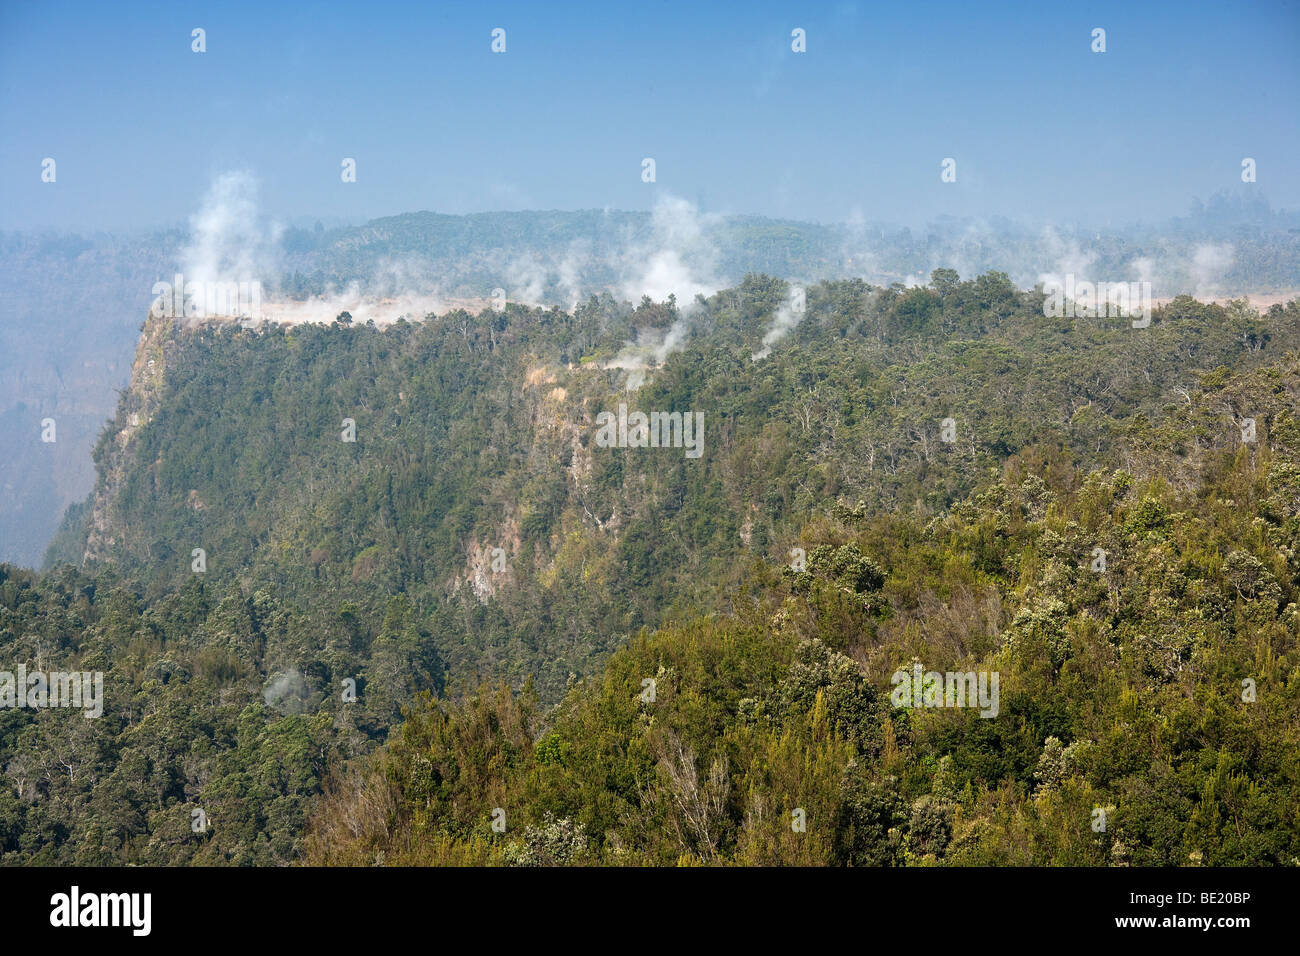 Steam vents at Volcano National Park, Hawaii. - Stock Image